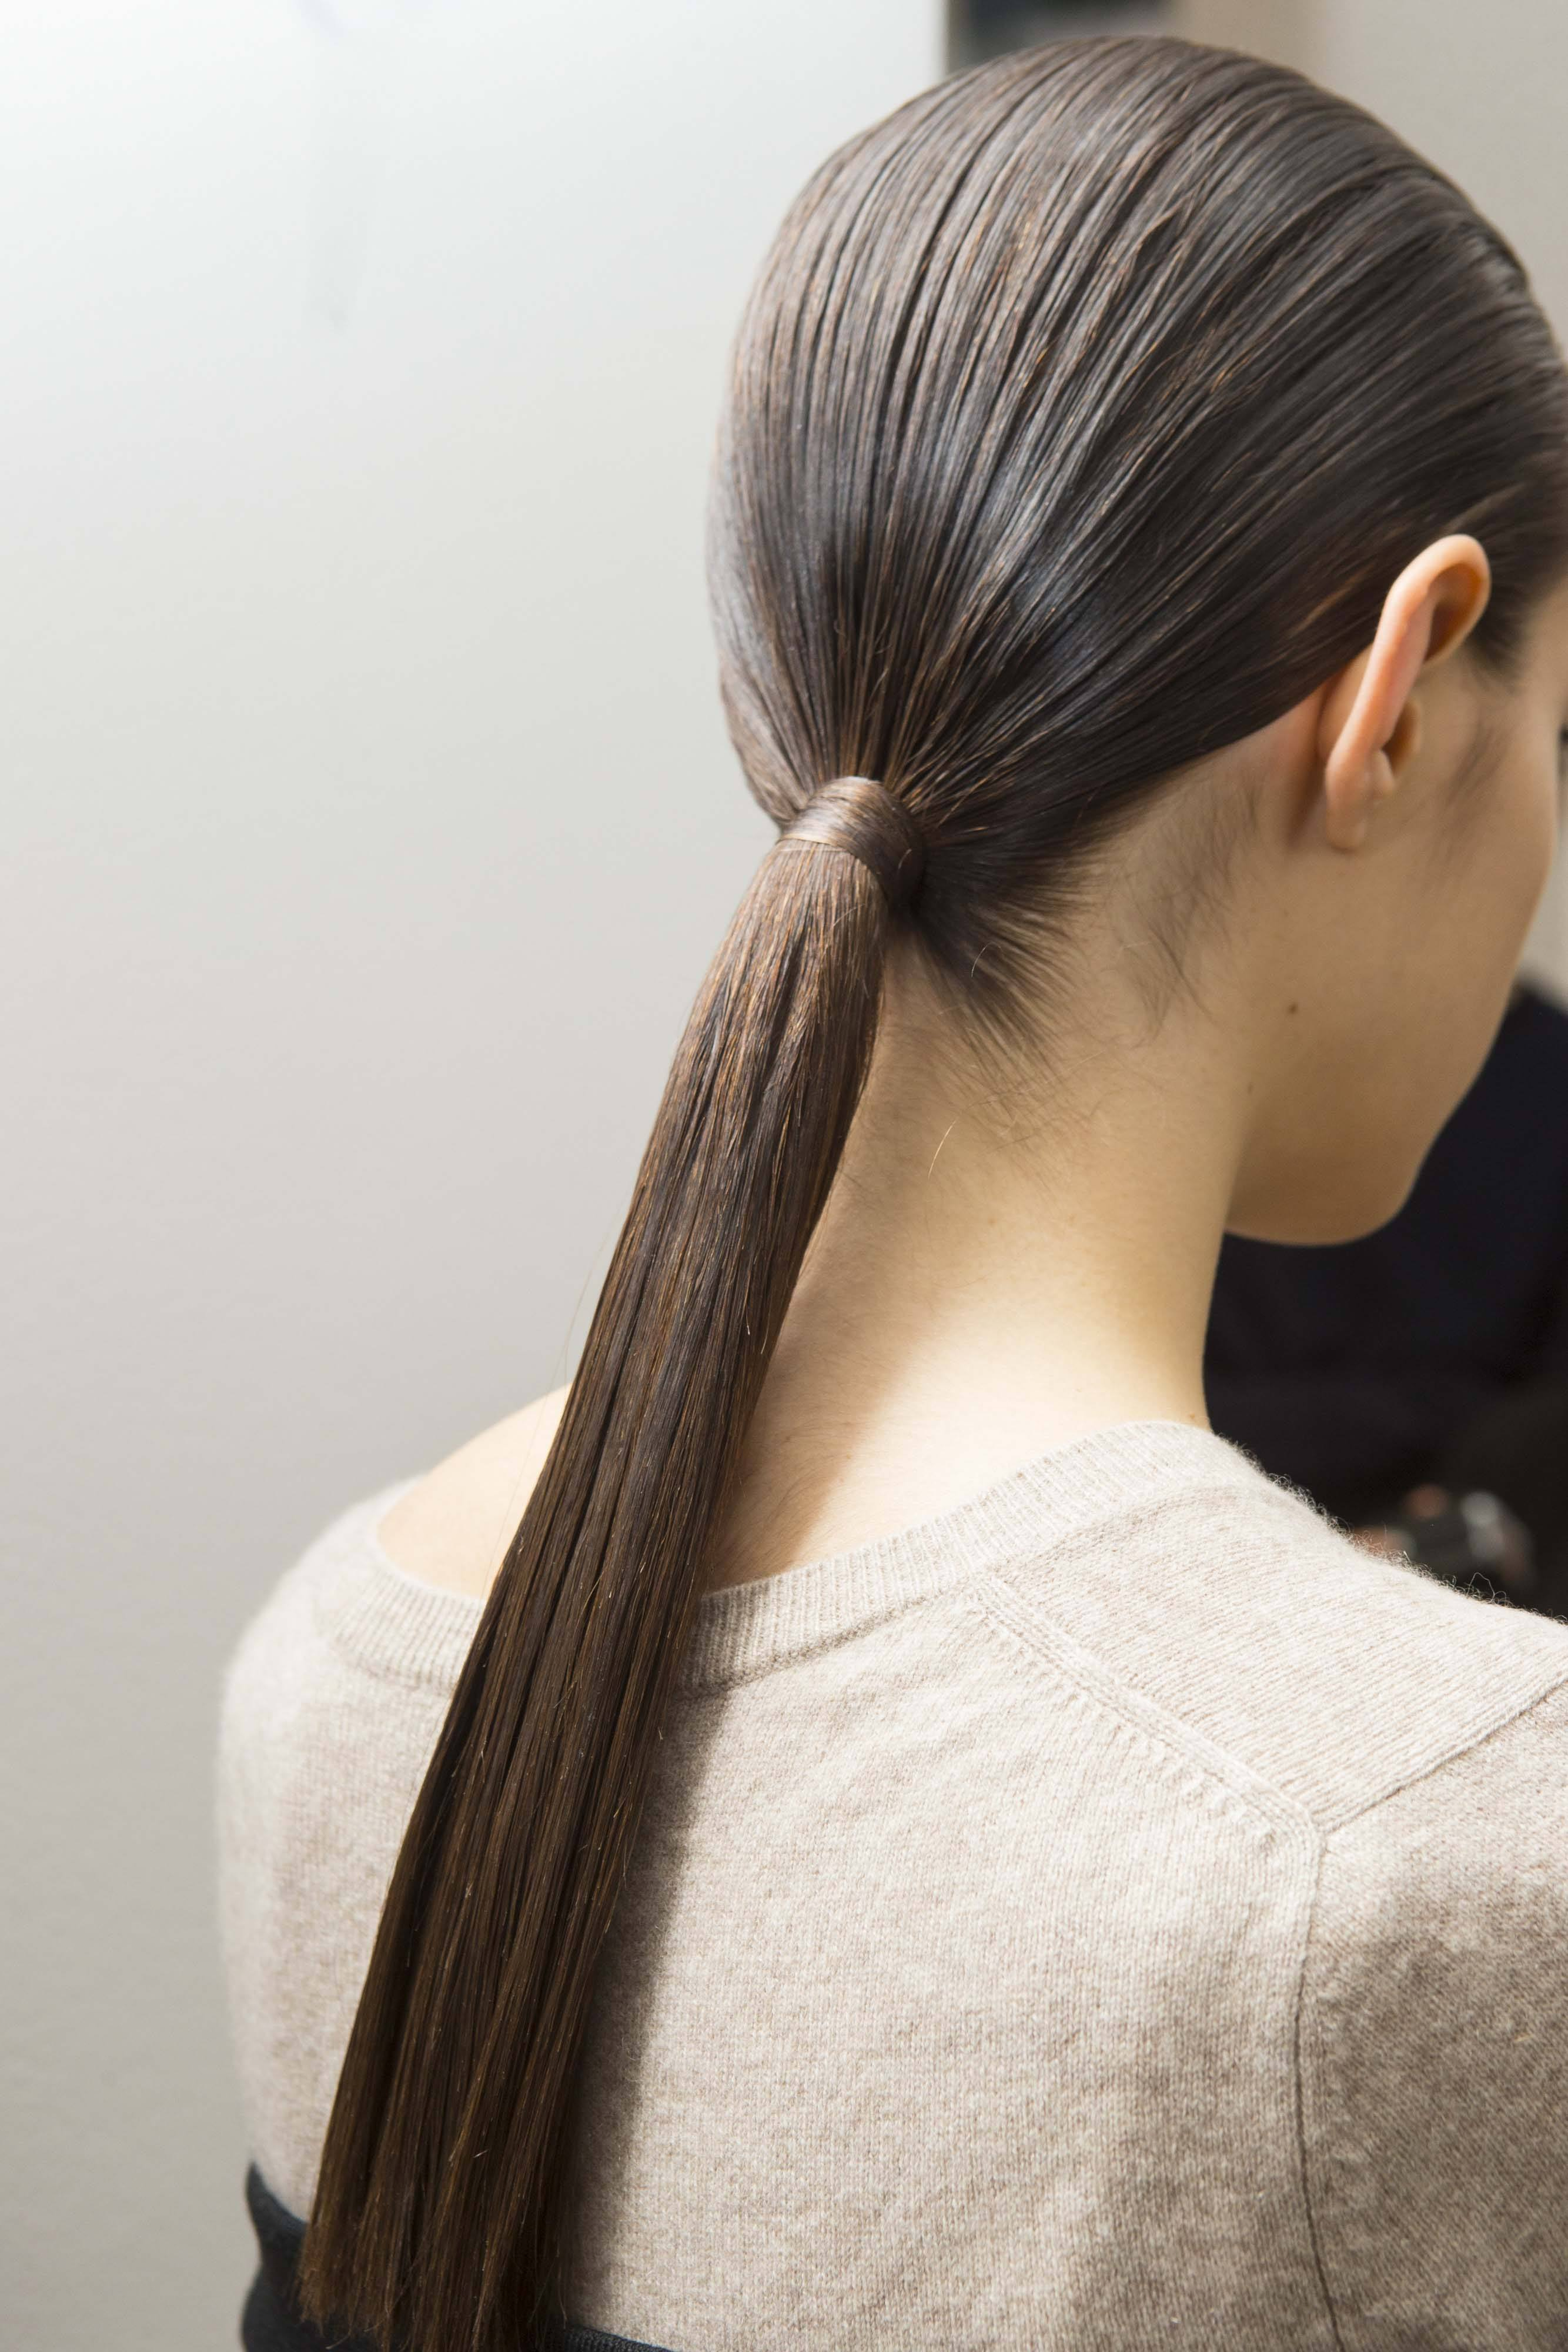 Last Minute Hairstyles 3 Easy Looks For New Years Eve